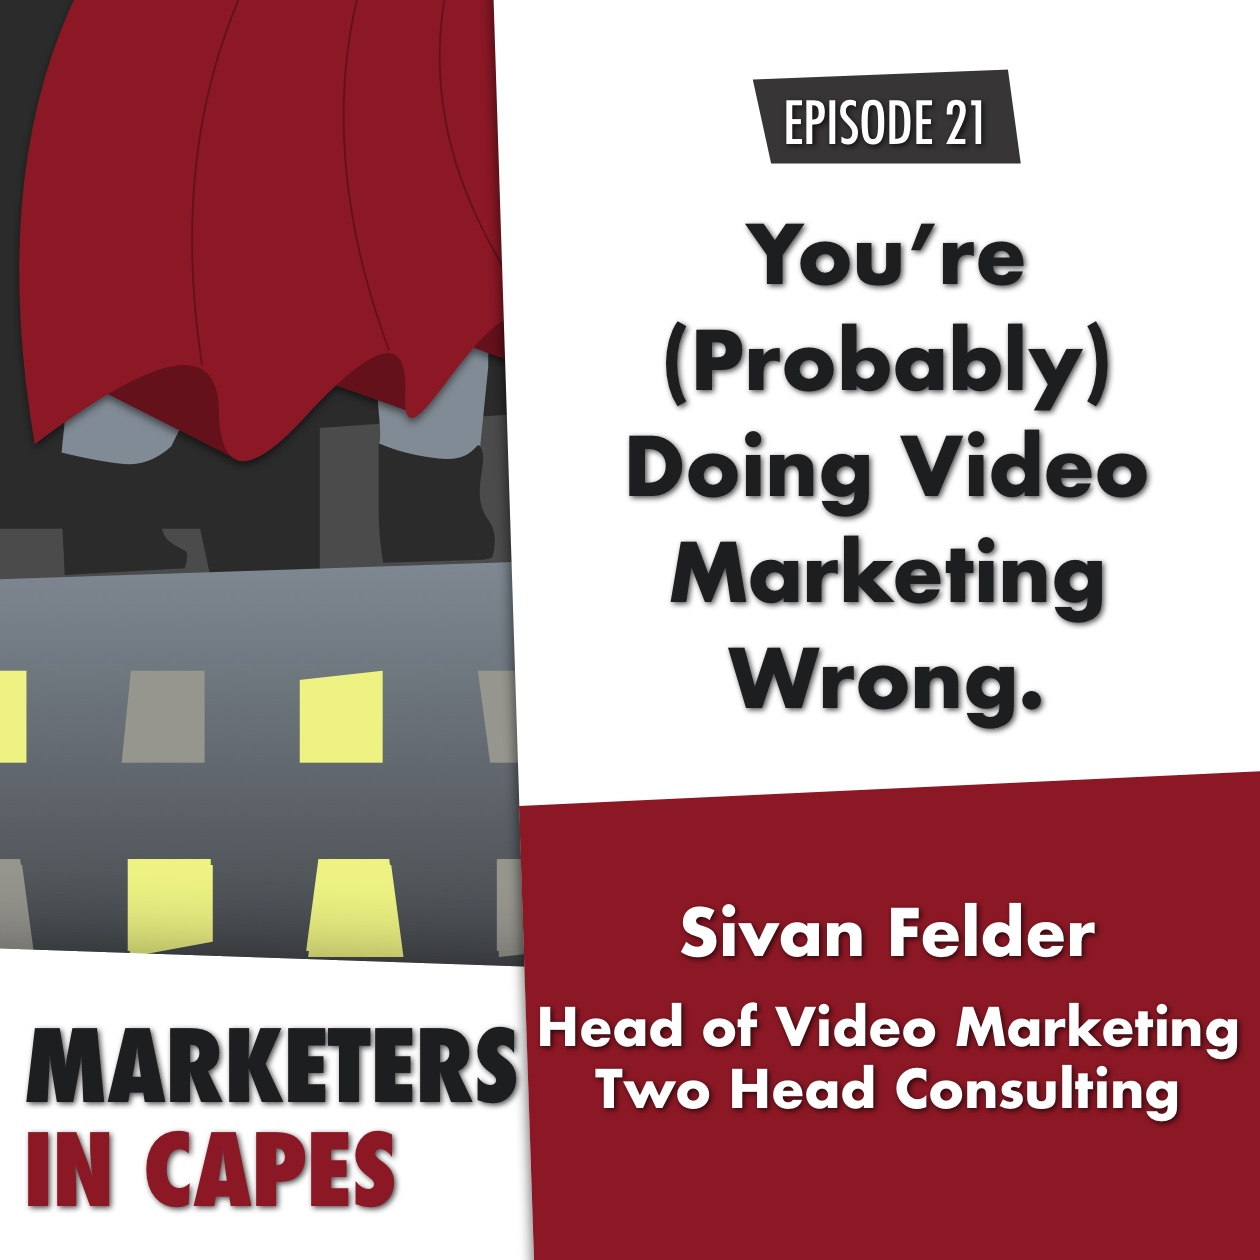 You're (Probably) Doing Video Marketing Wrong with Sivan Felder